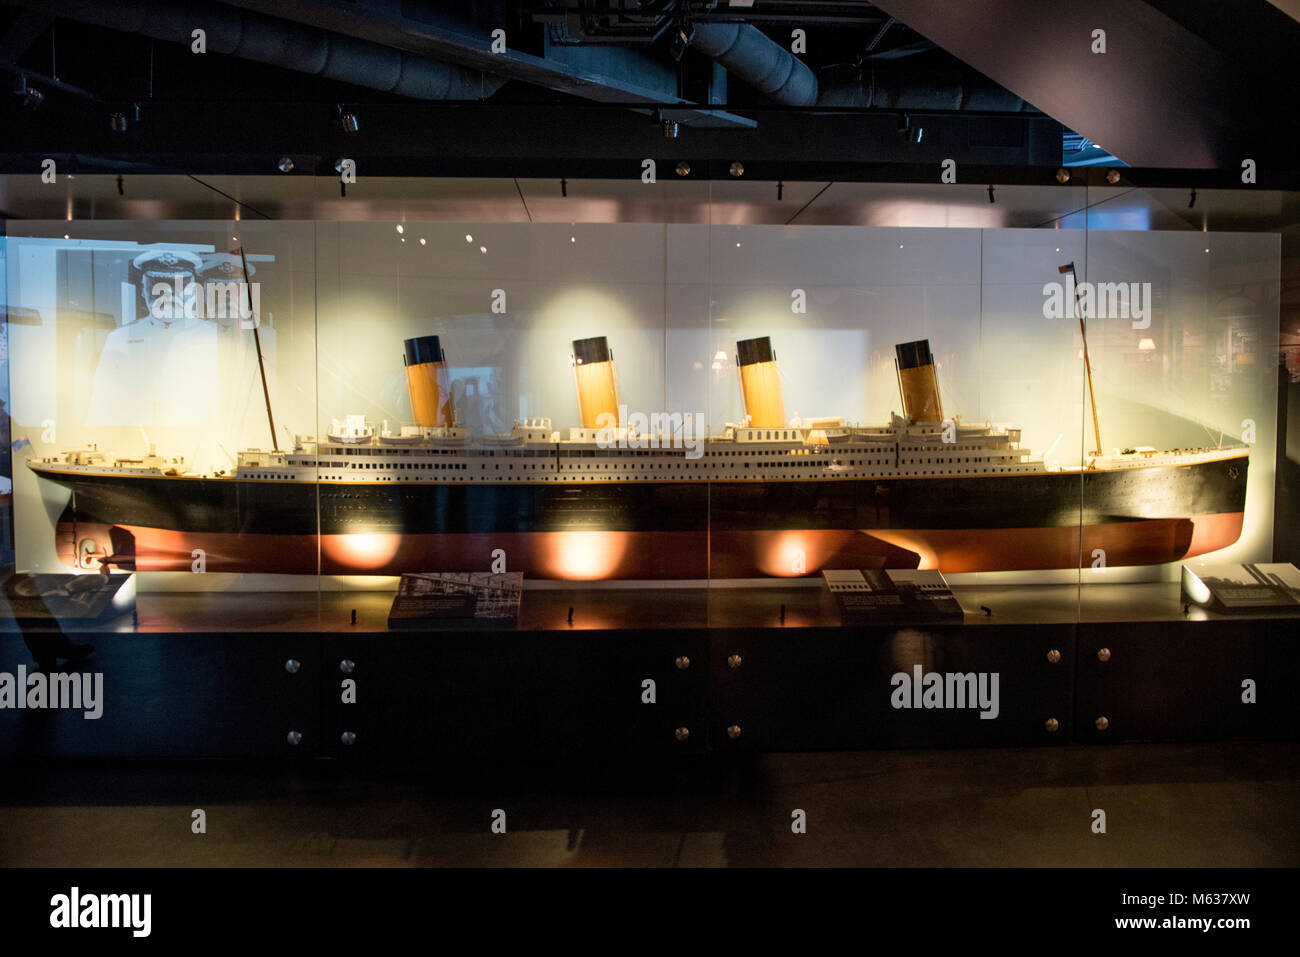 Titanic ship miniature at the Titanic Museum - Stock Image